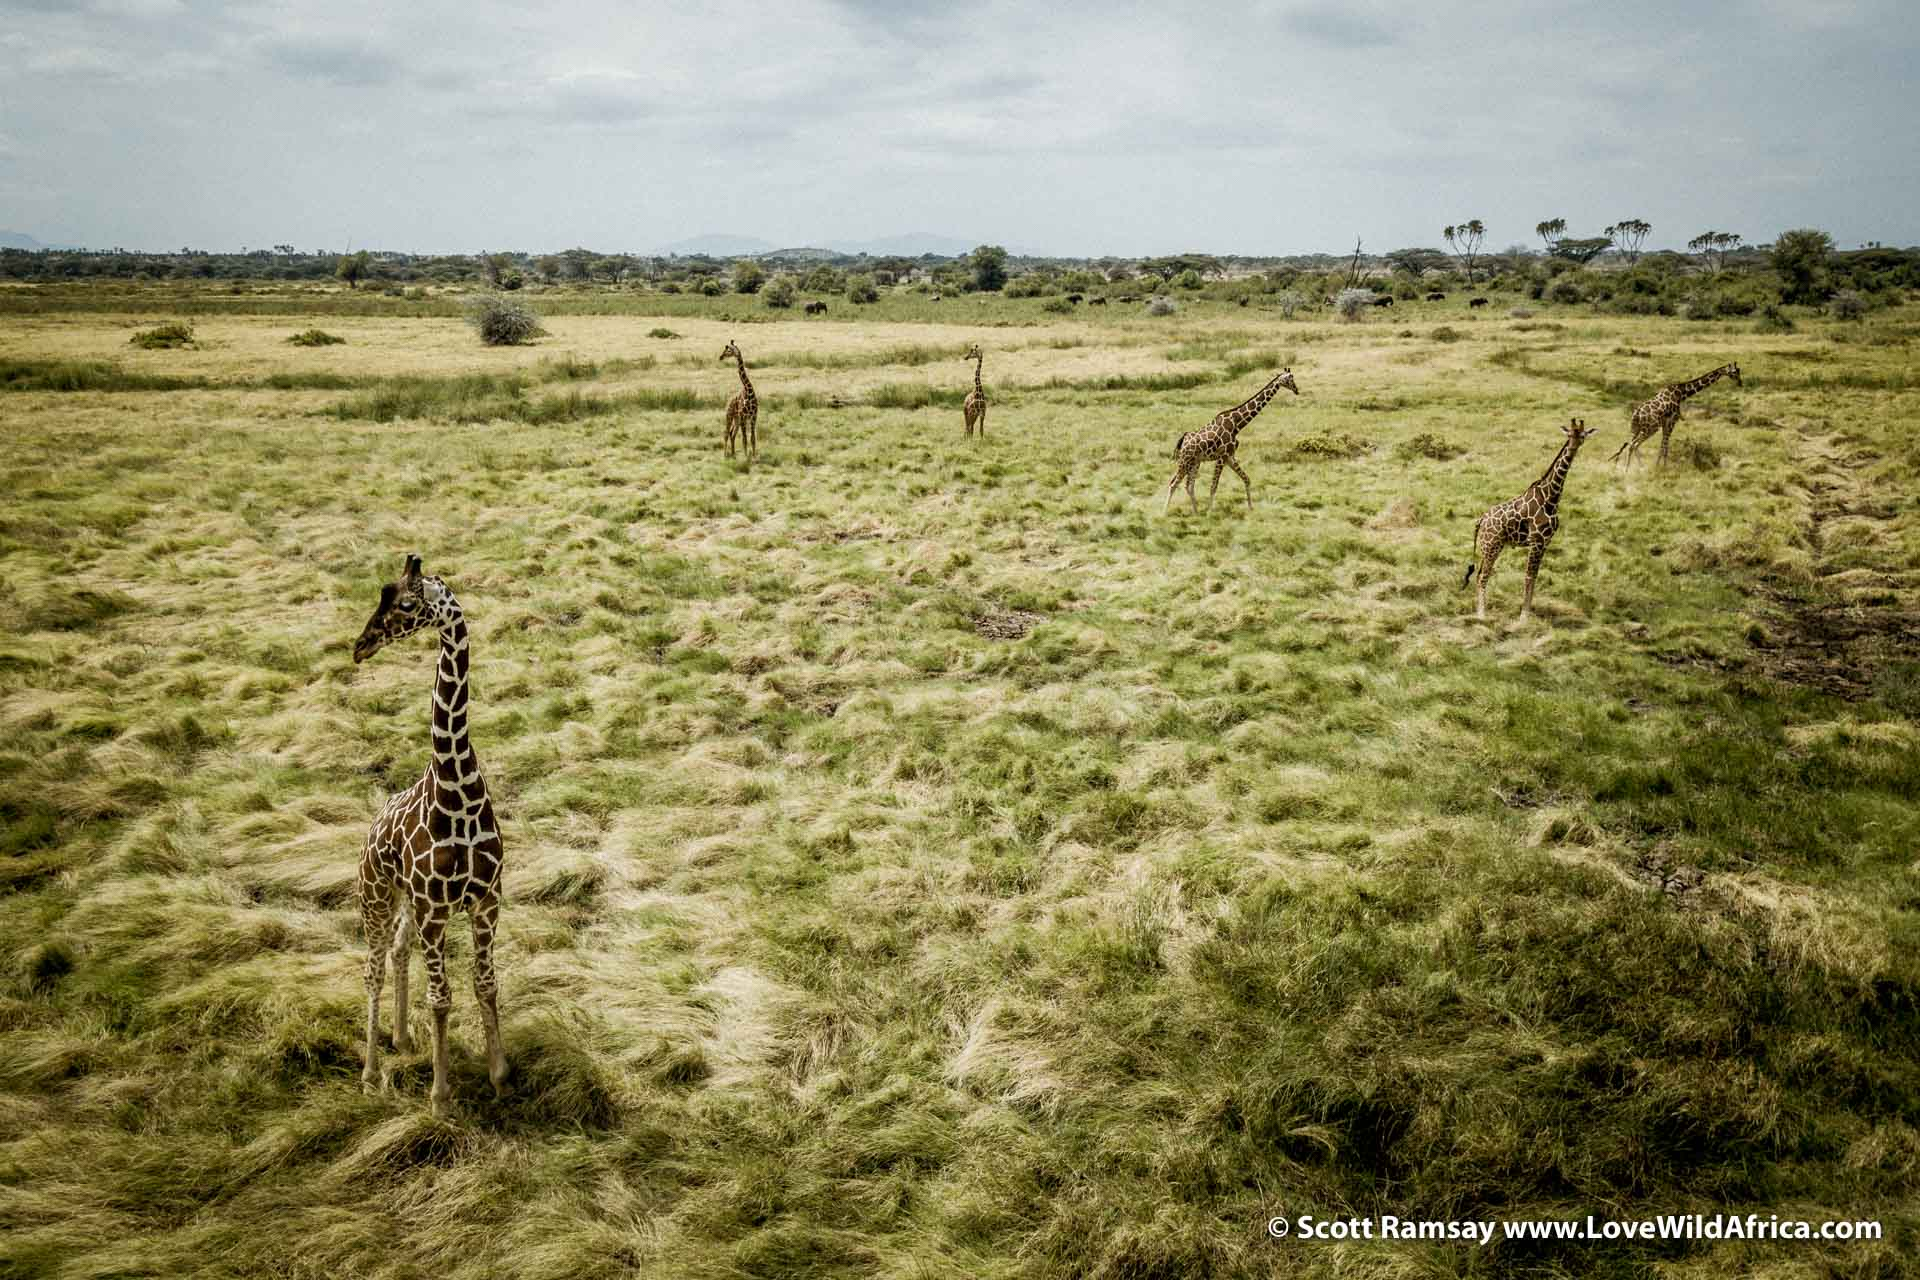 Reticulated giraffes, photographed from the air.